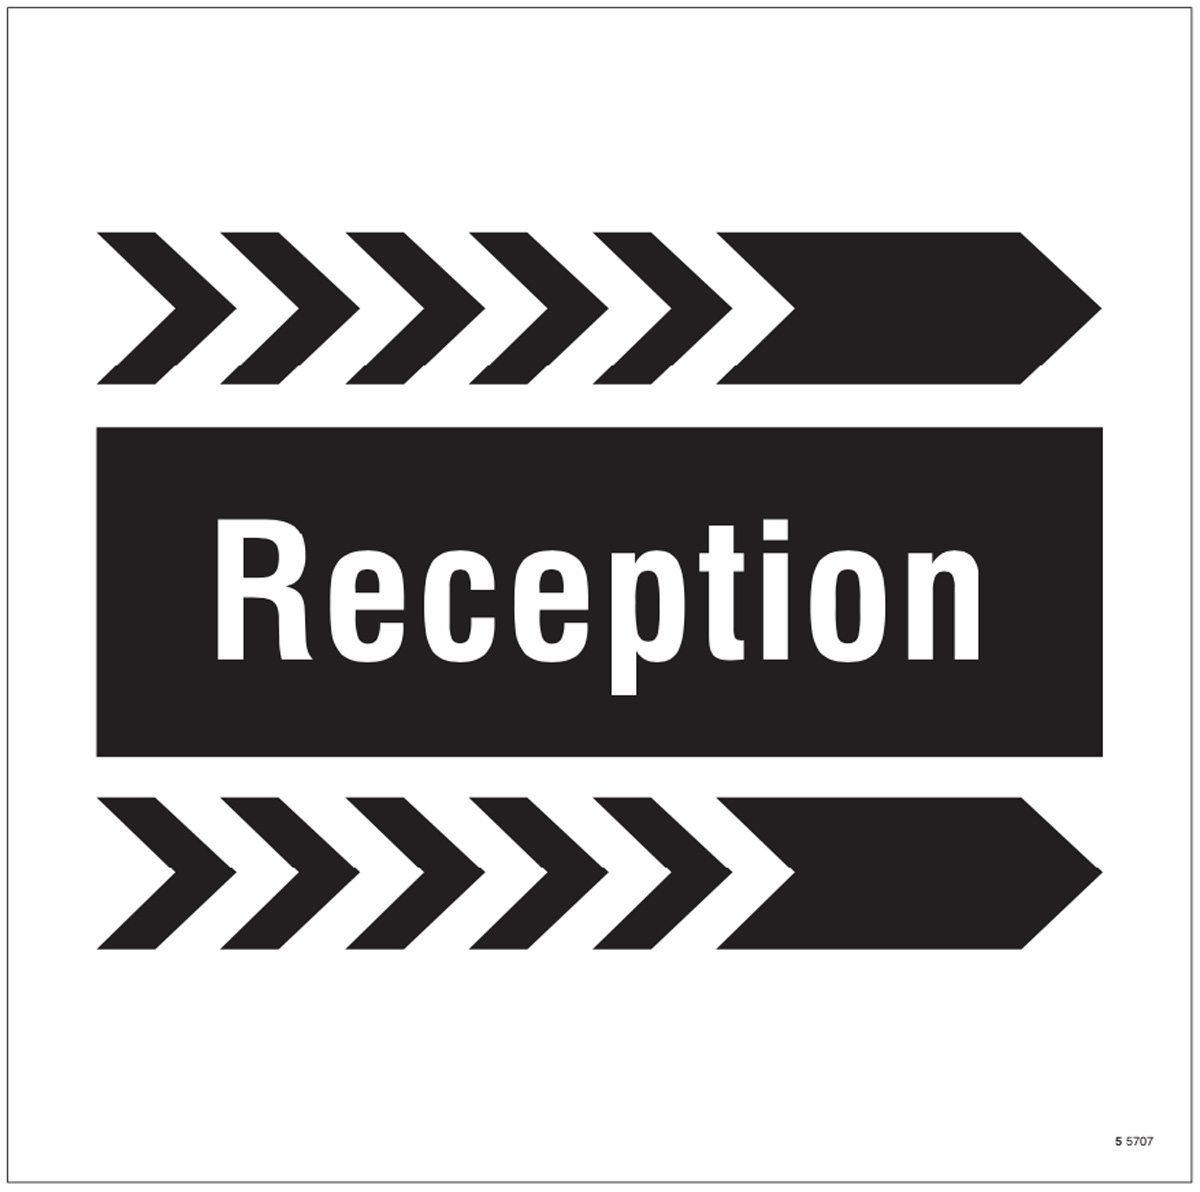 Reception, arrow right site saver sign 400x400mm